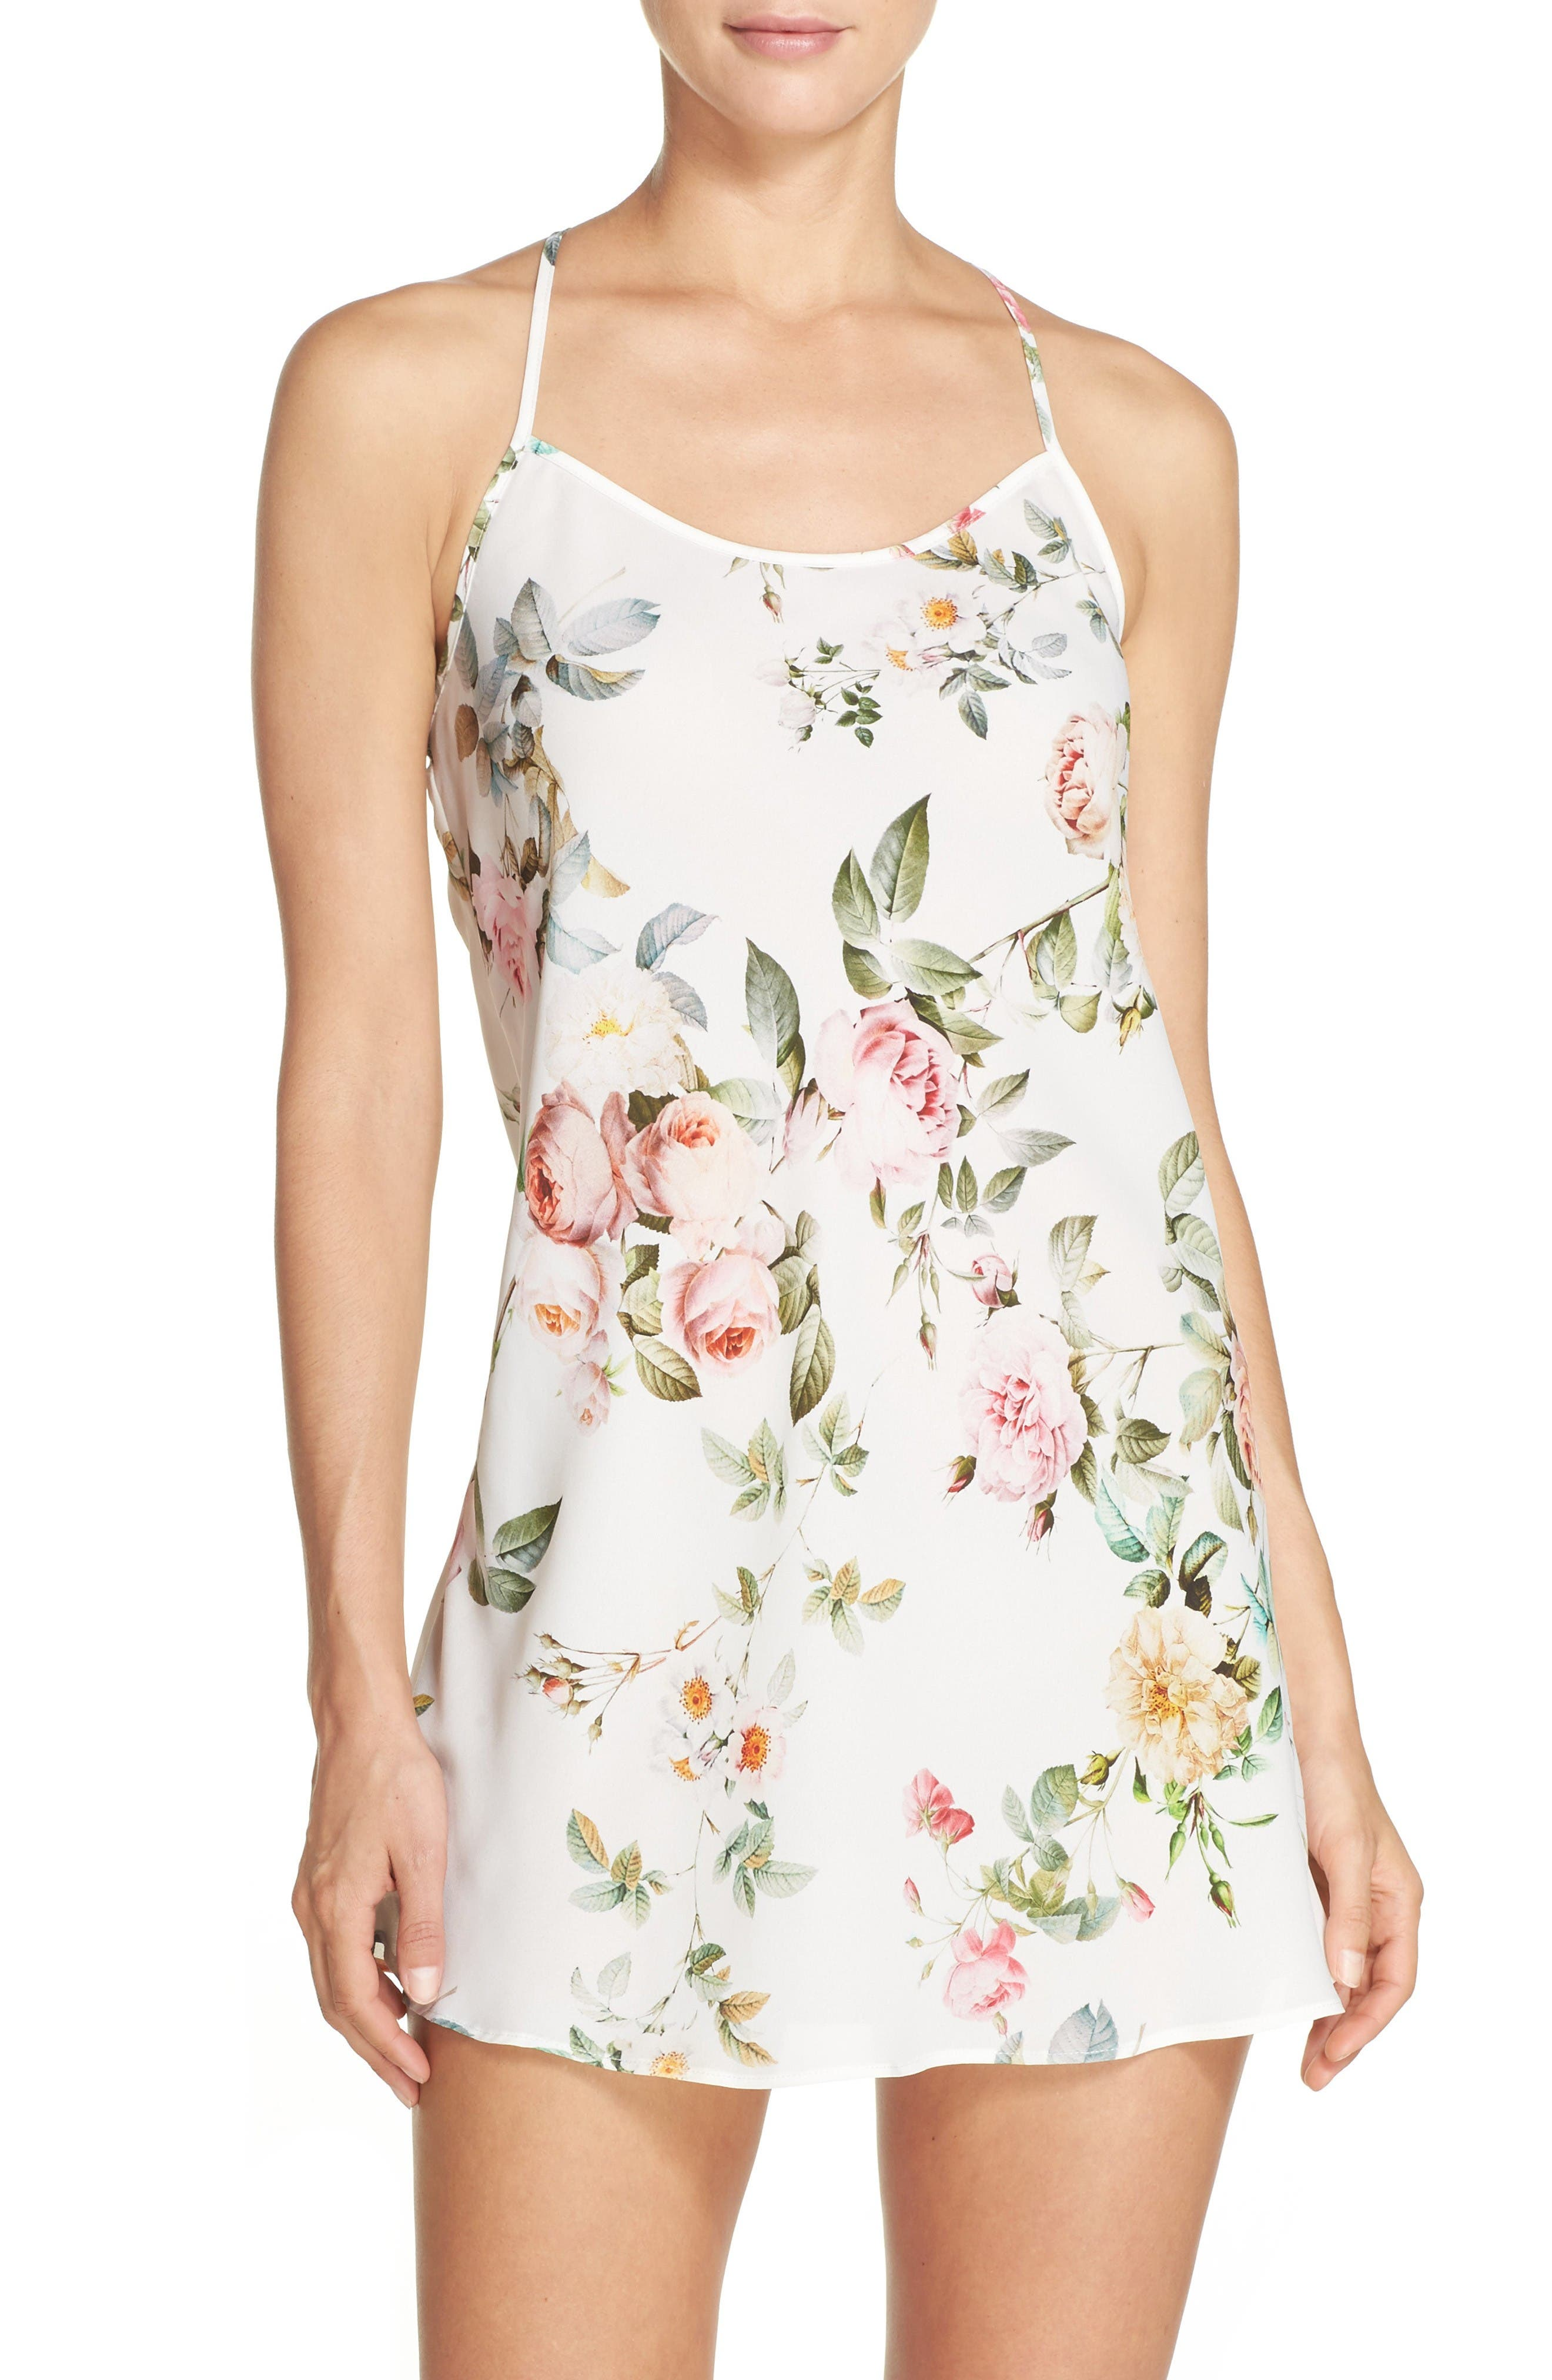 Abigal Chemise,                             Main thumbnail 1, color,                             Ivory Floral